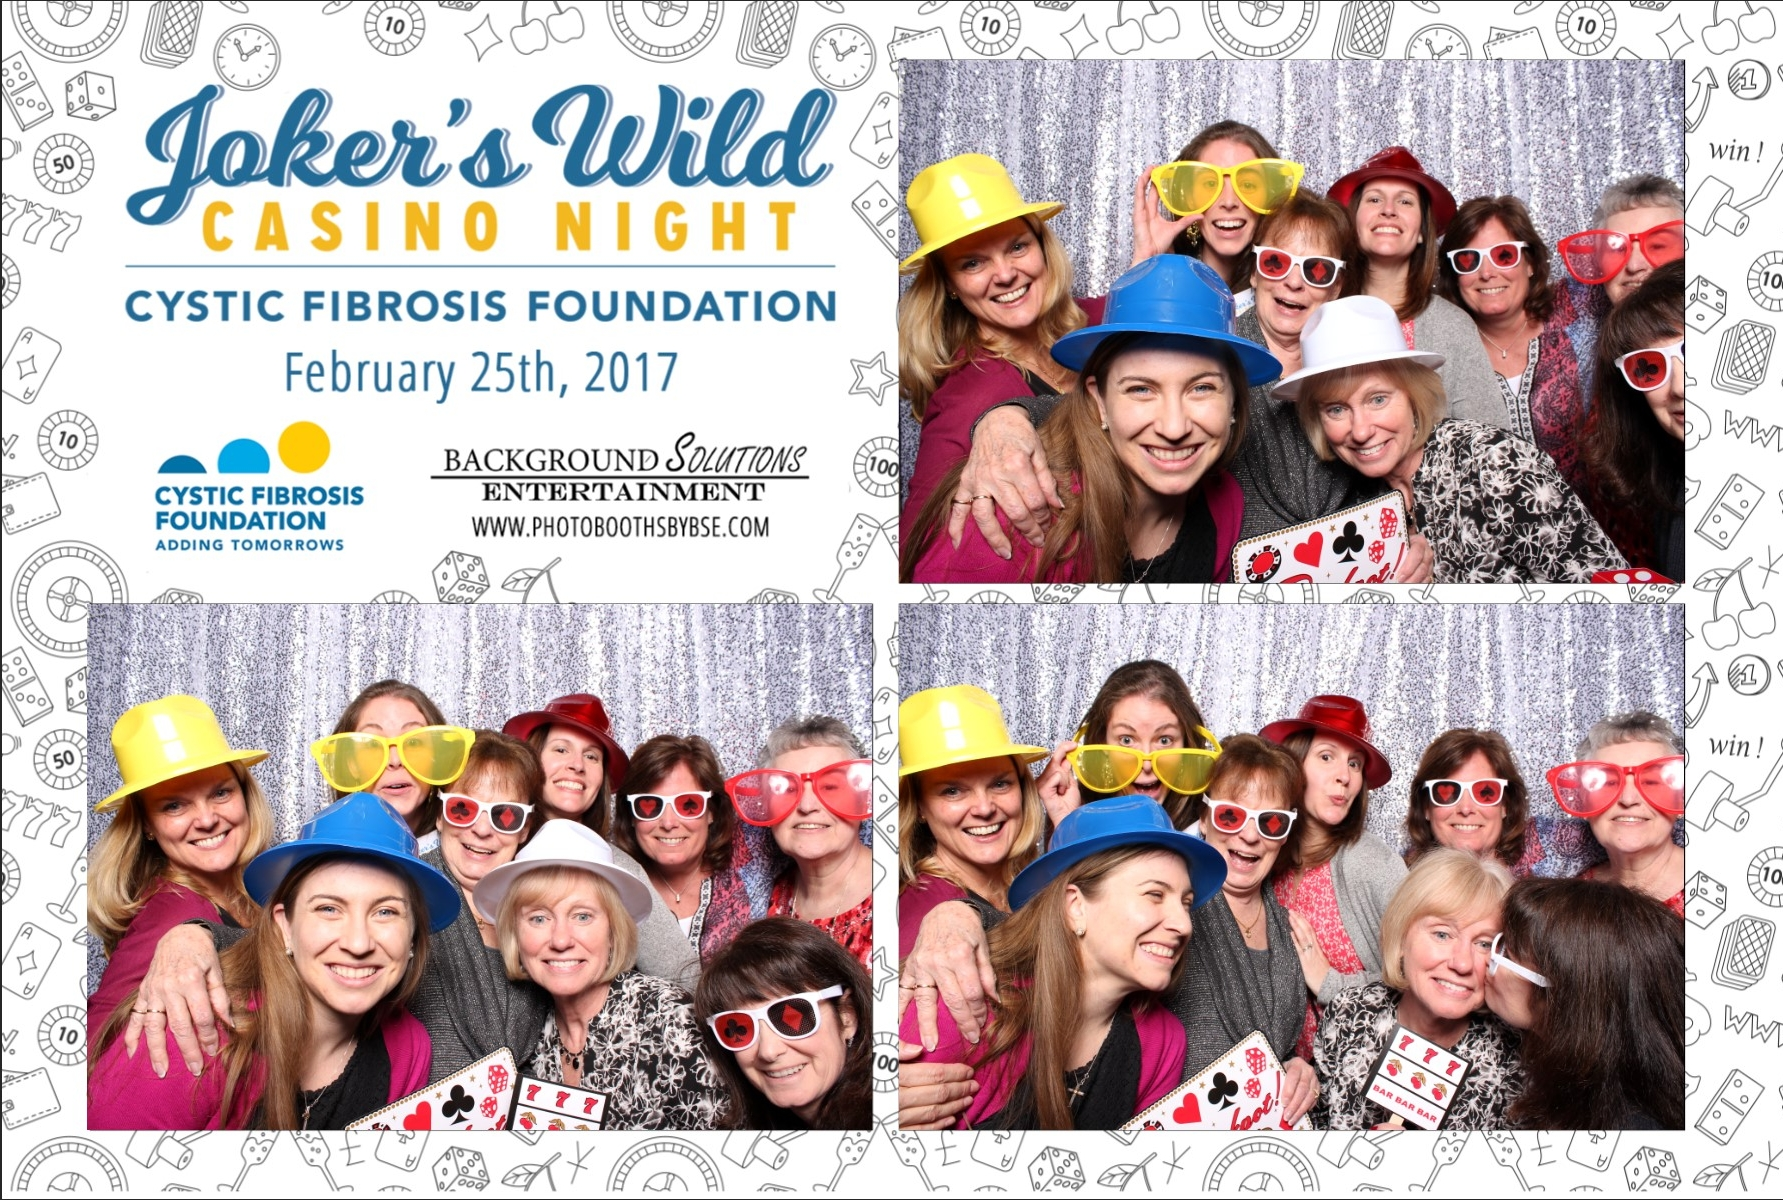 CFF Joker's Wild Casino Night Photo Booth (46).jpg